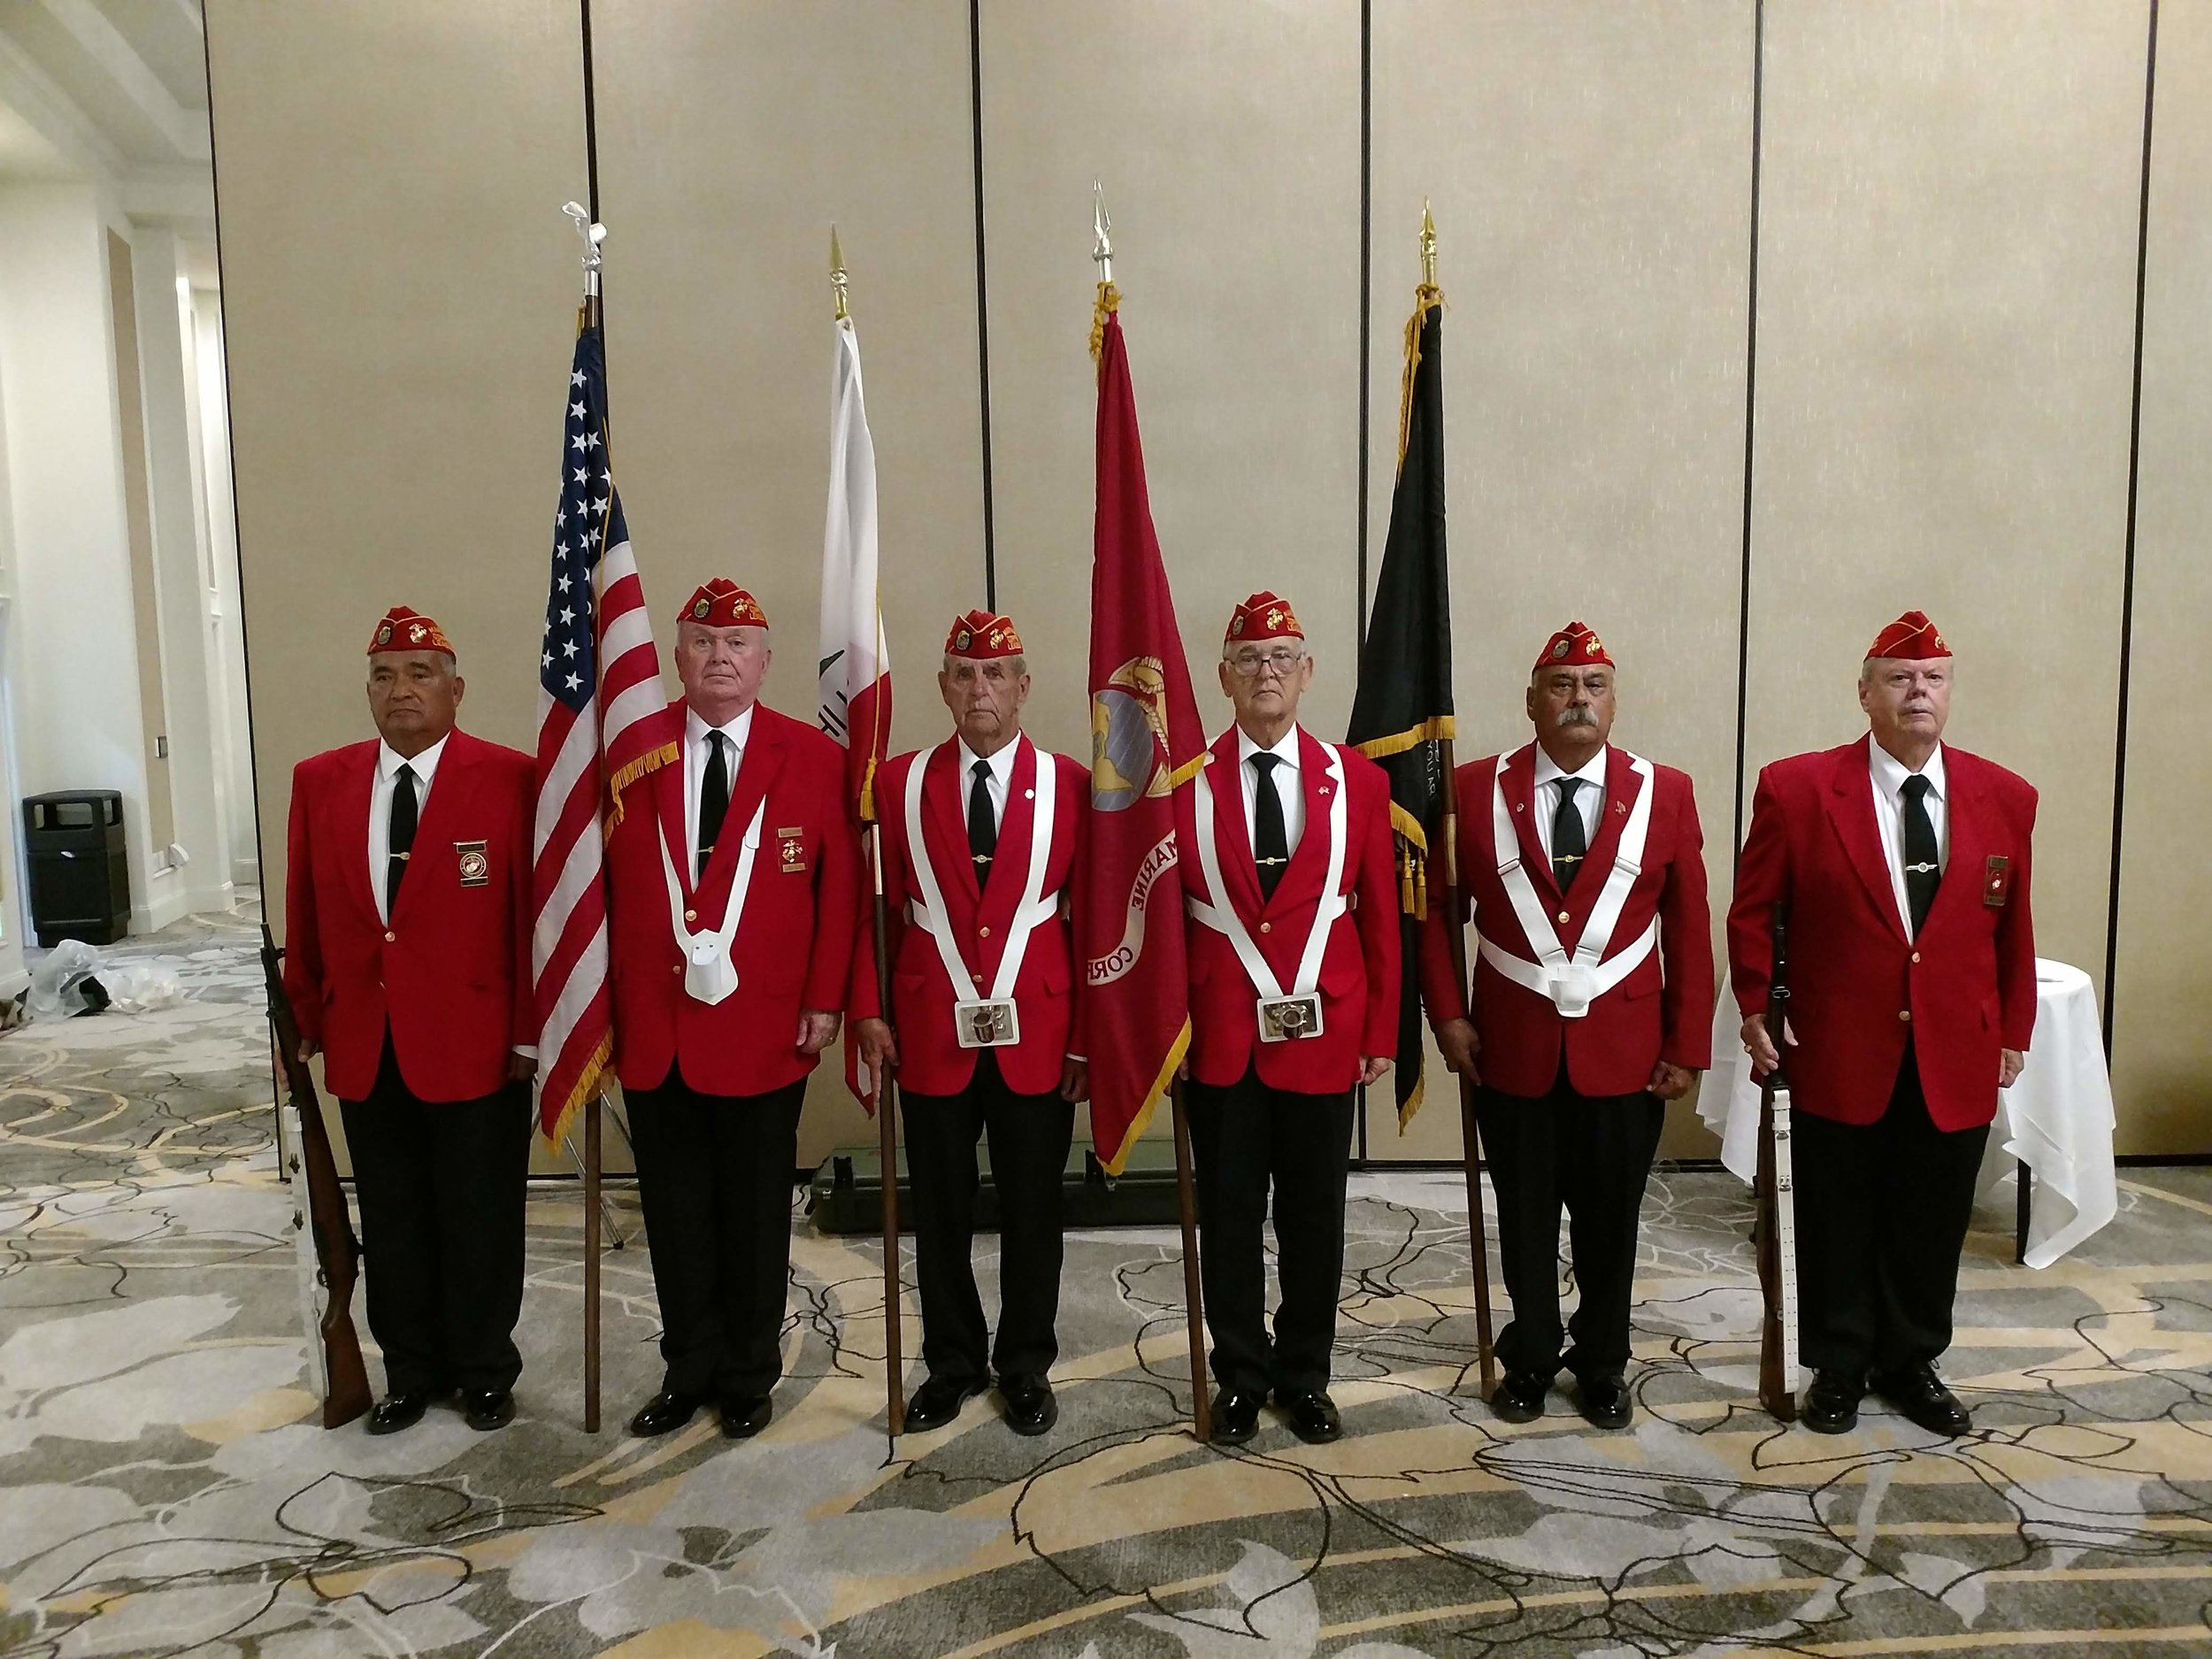 October 3, 2018   Detachment Color Guard presenting Colors at the closing banquet ceremony of the Los Angeles County Veterans Administration Fall Conference.  L/R: Fausto Galvan, Dick Jennings, John Coley, Ben Pfister, Harry Hodges, and David Opfer.